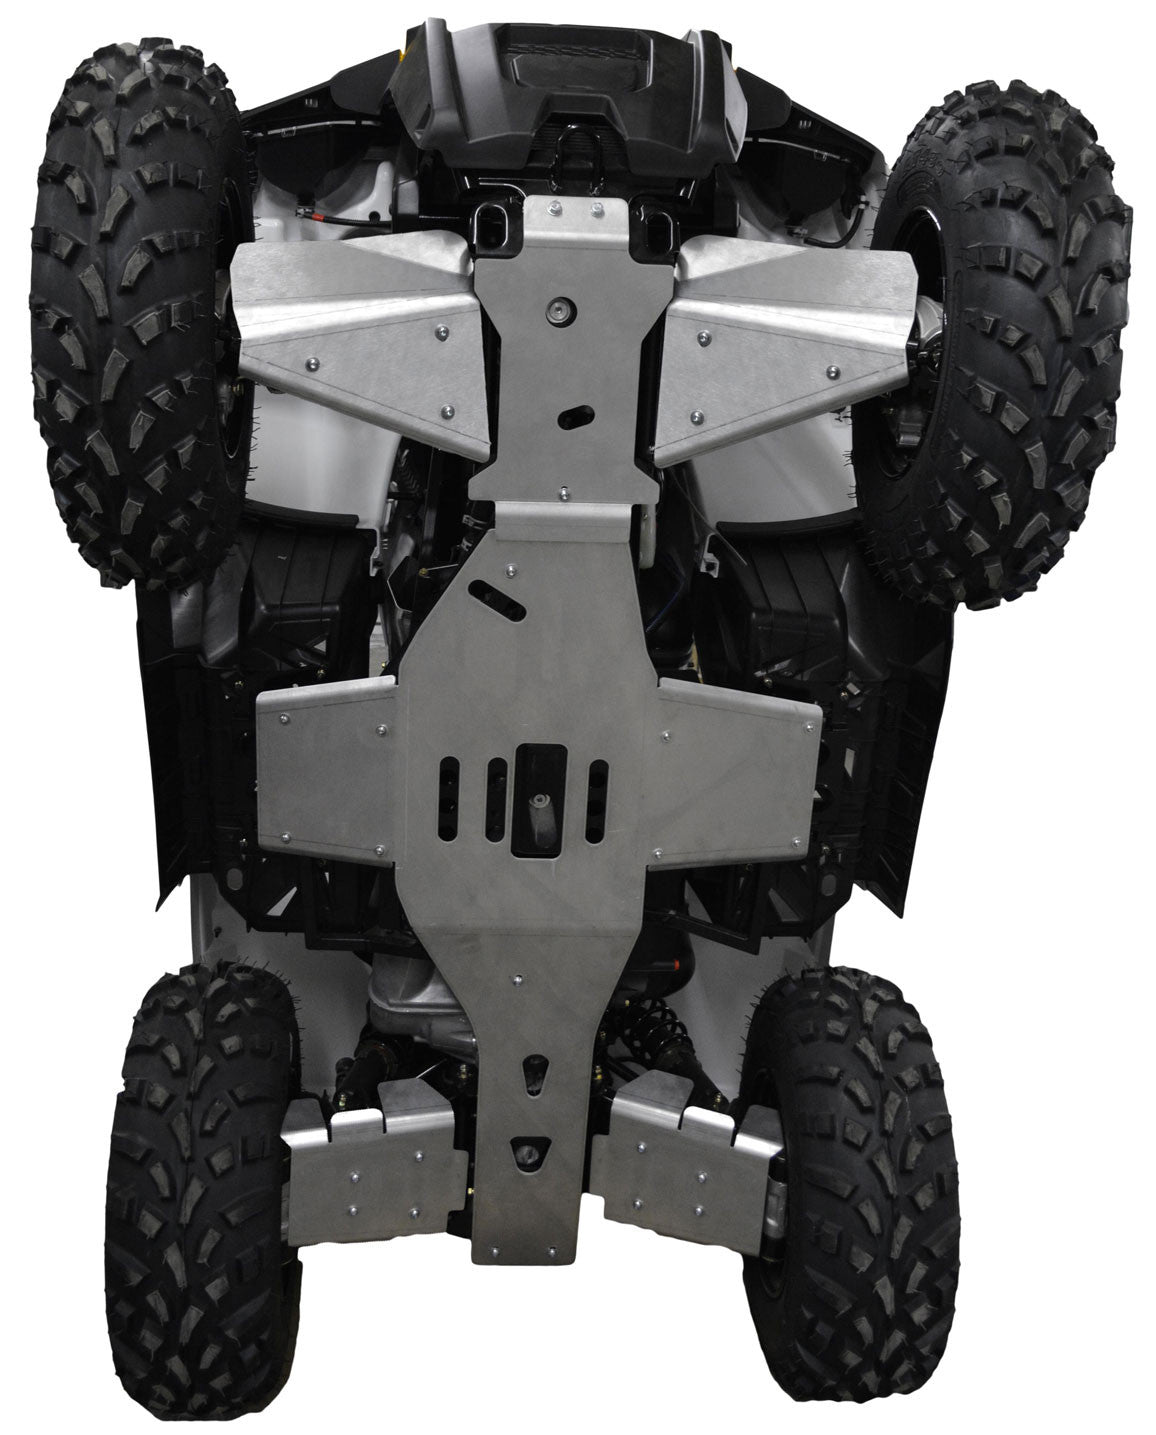 6-Piece Complete Aluminum Skid Plate Set, Polaris Sportsman 570